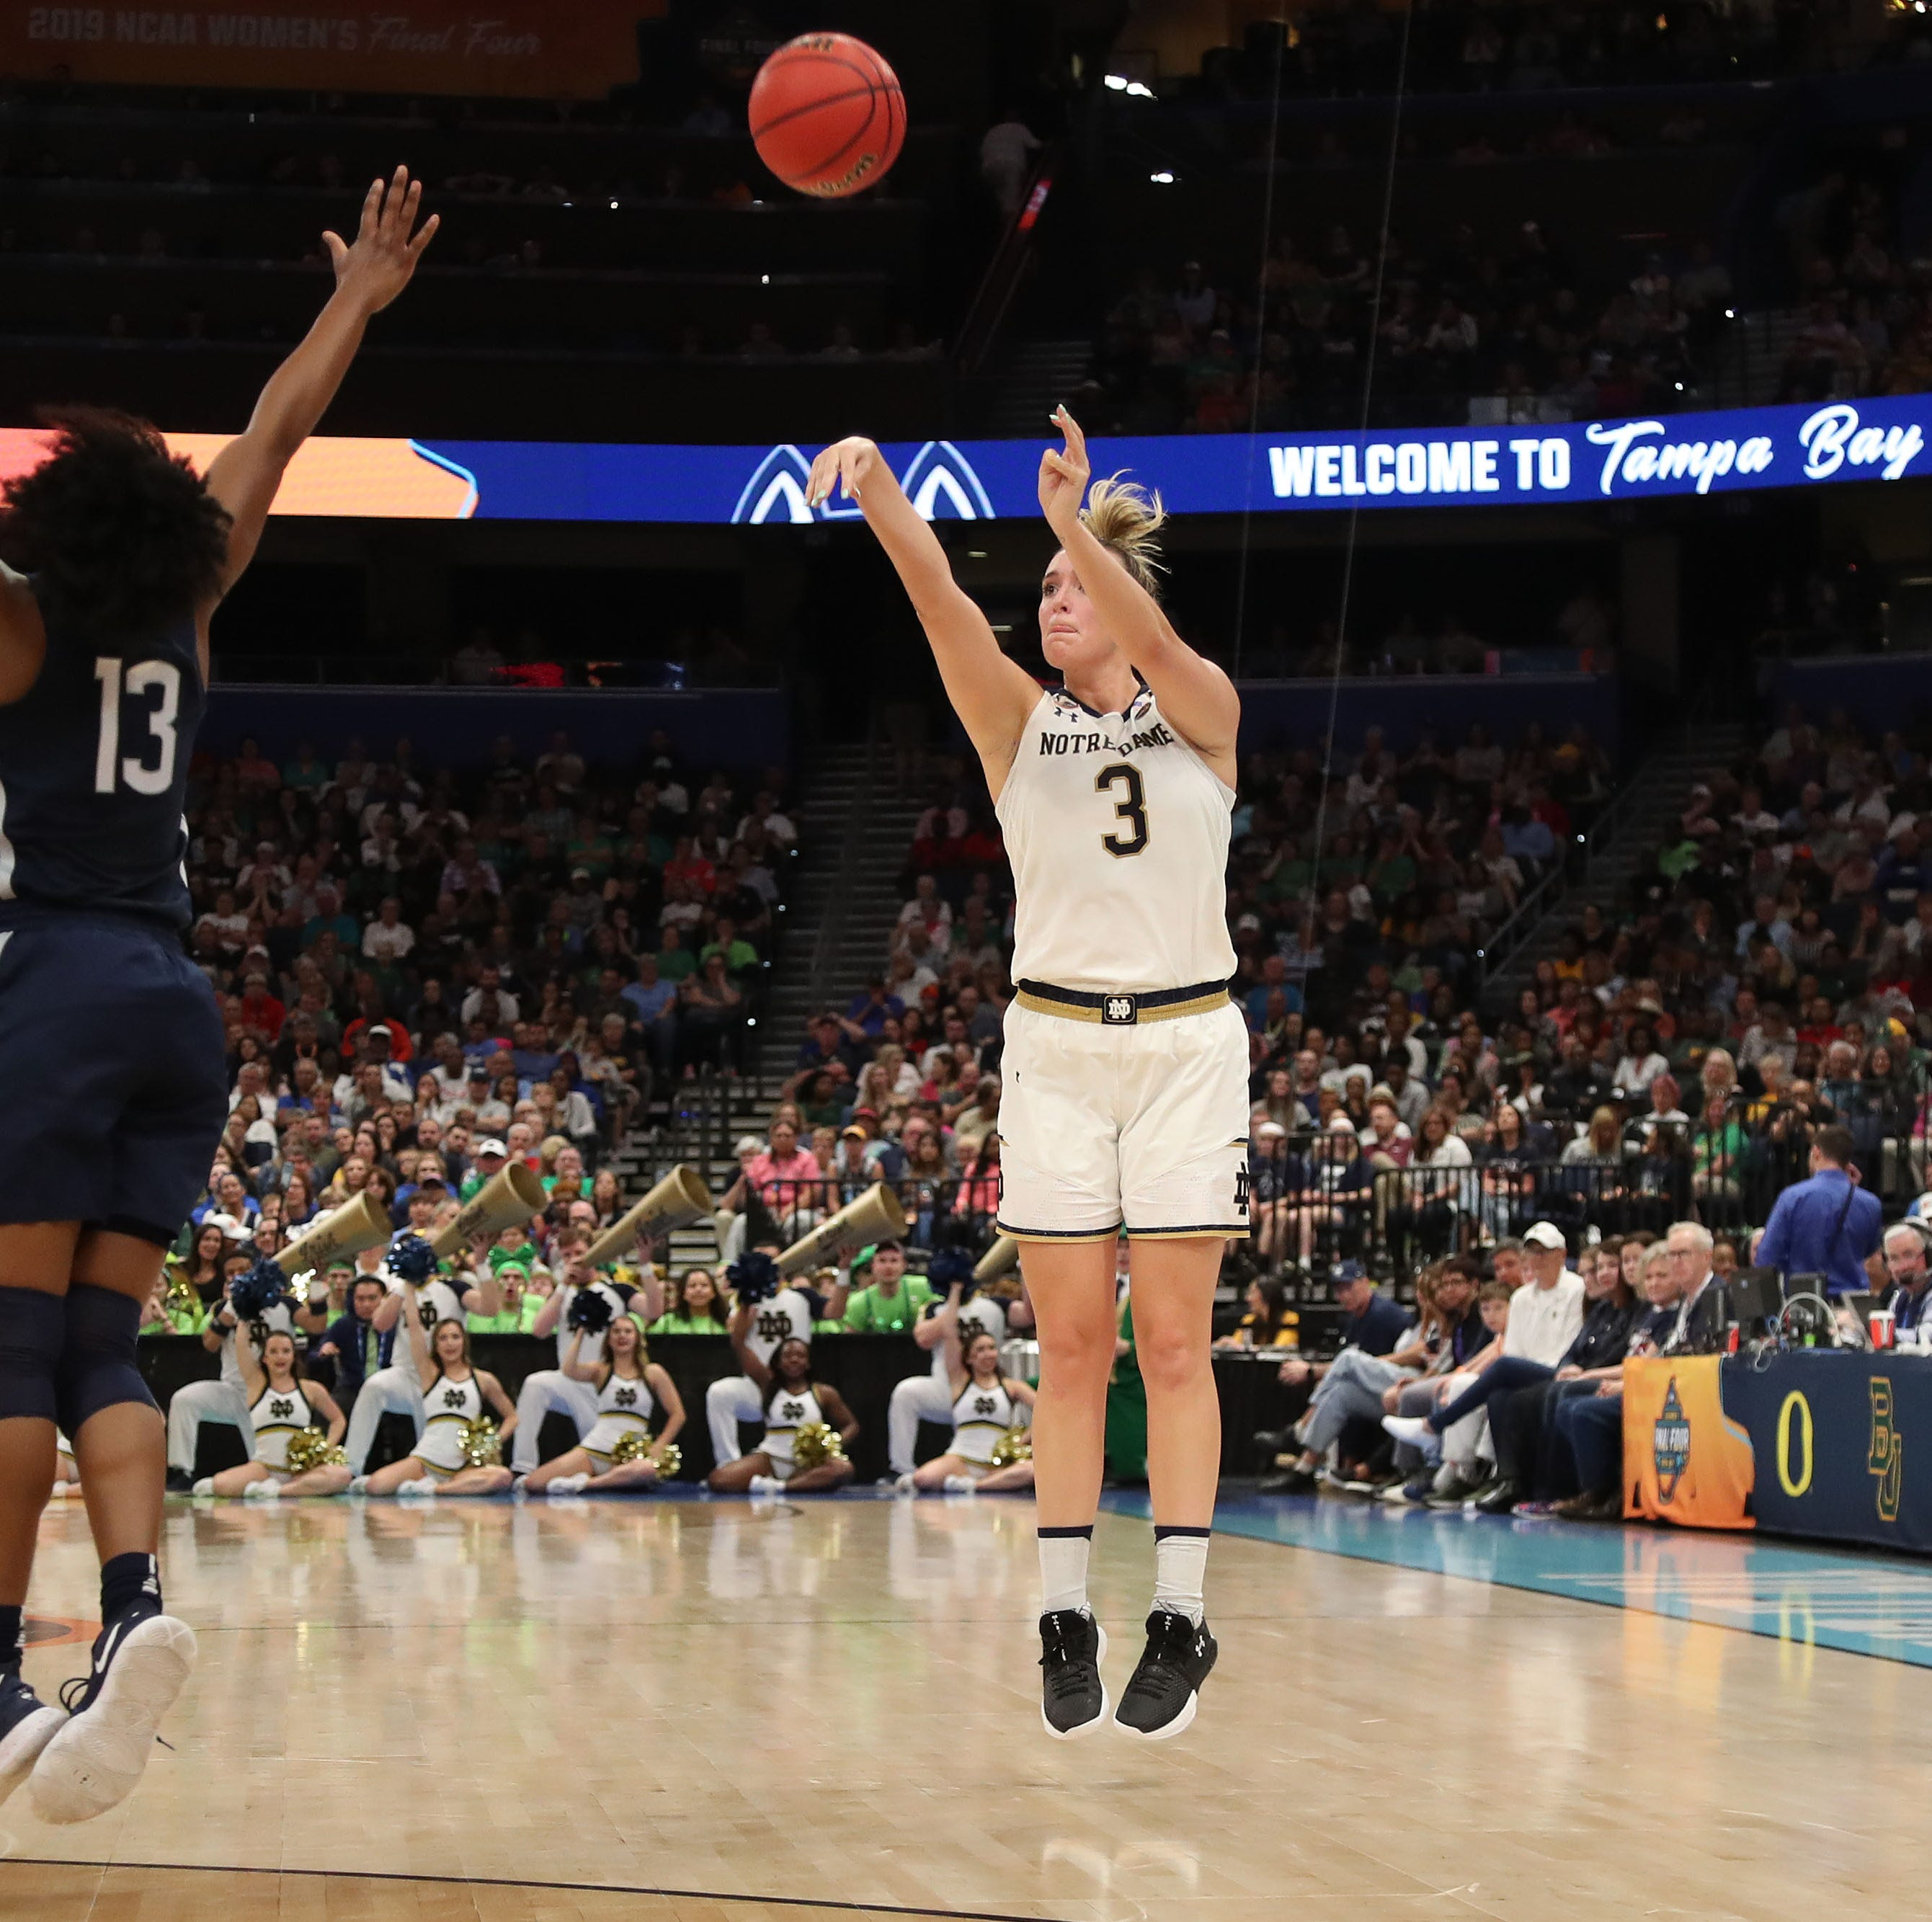 WNBA Draft 2019: Marina Mabrey selected by Los Angeles Sparks